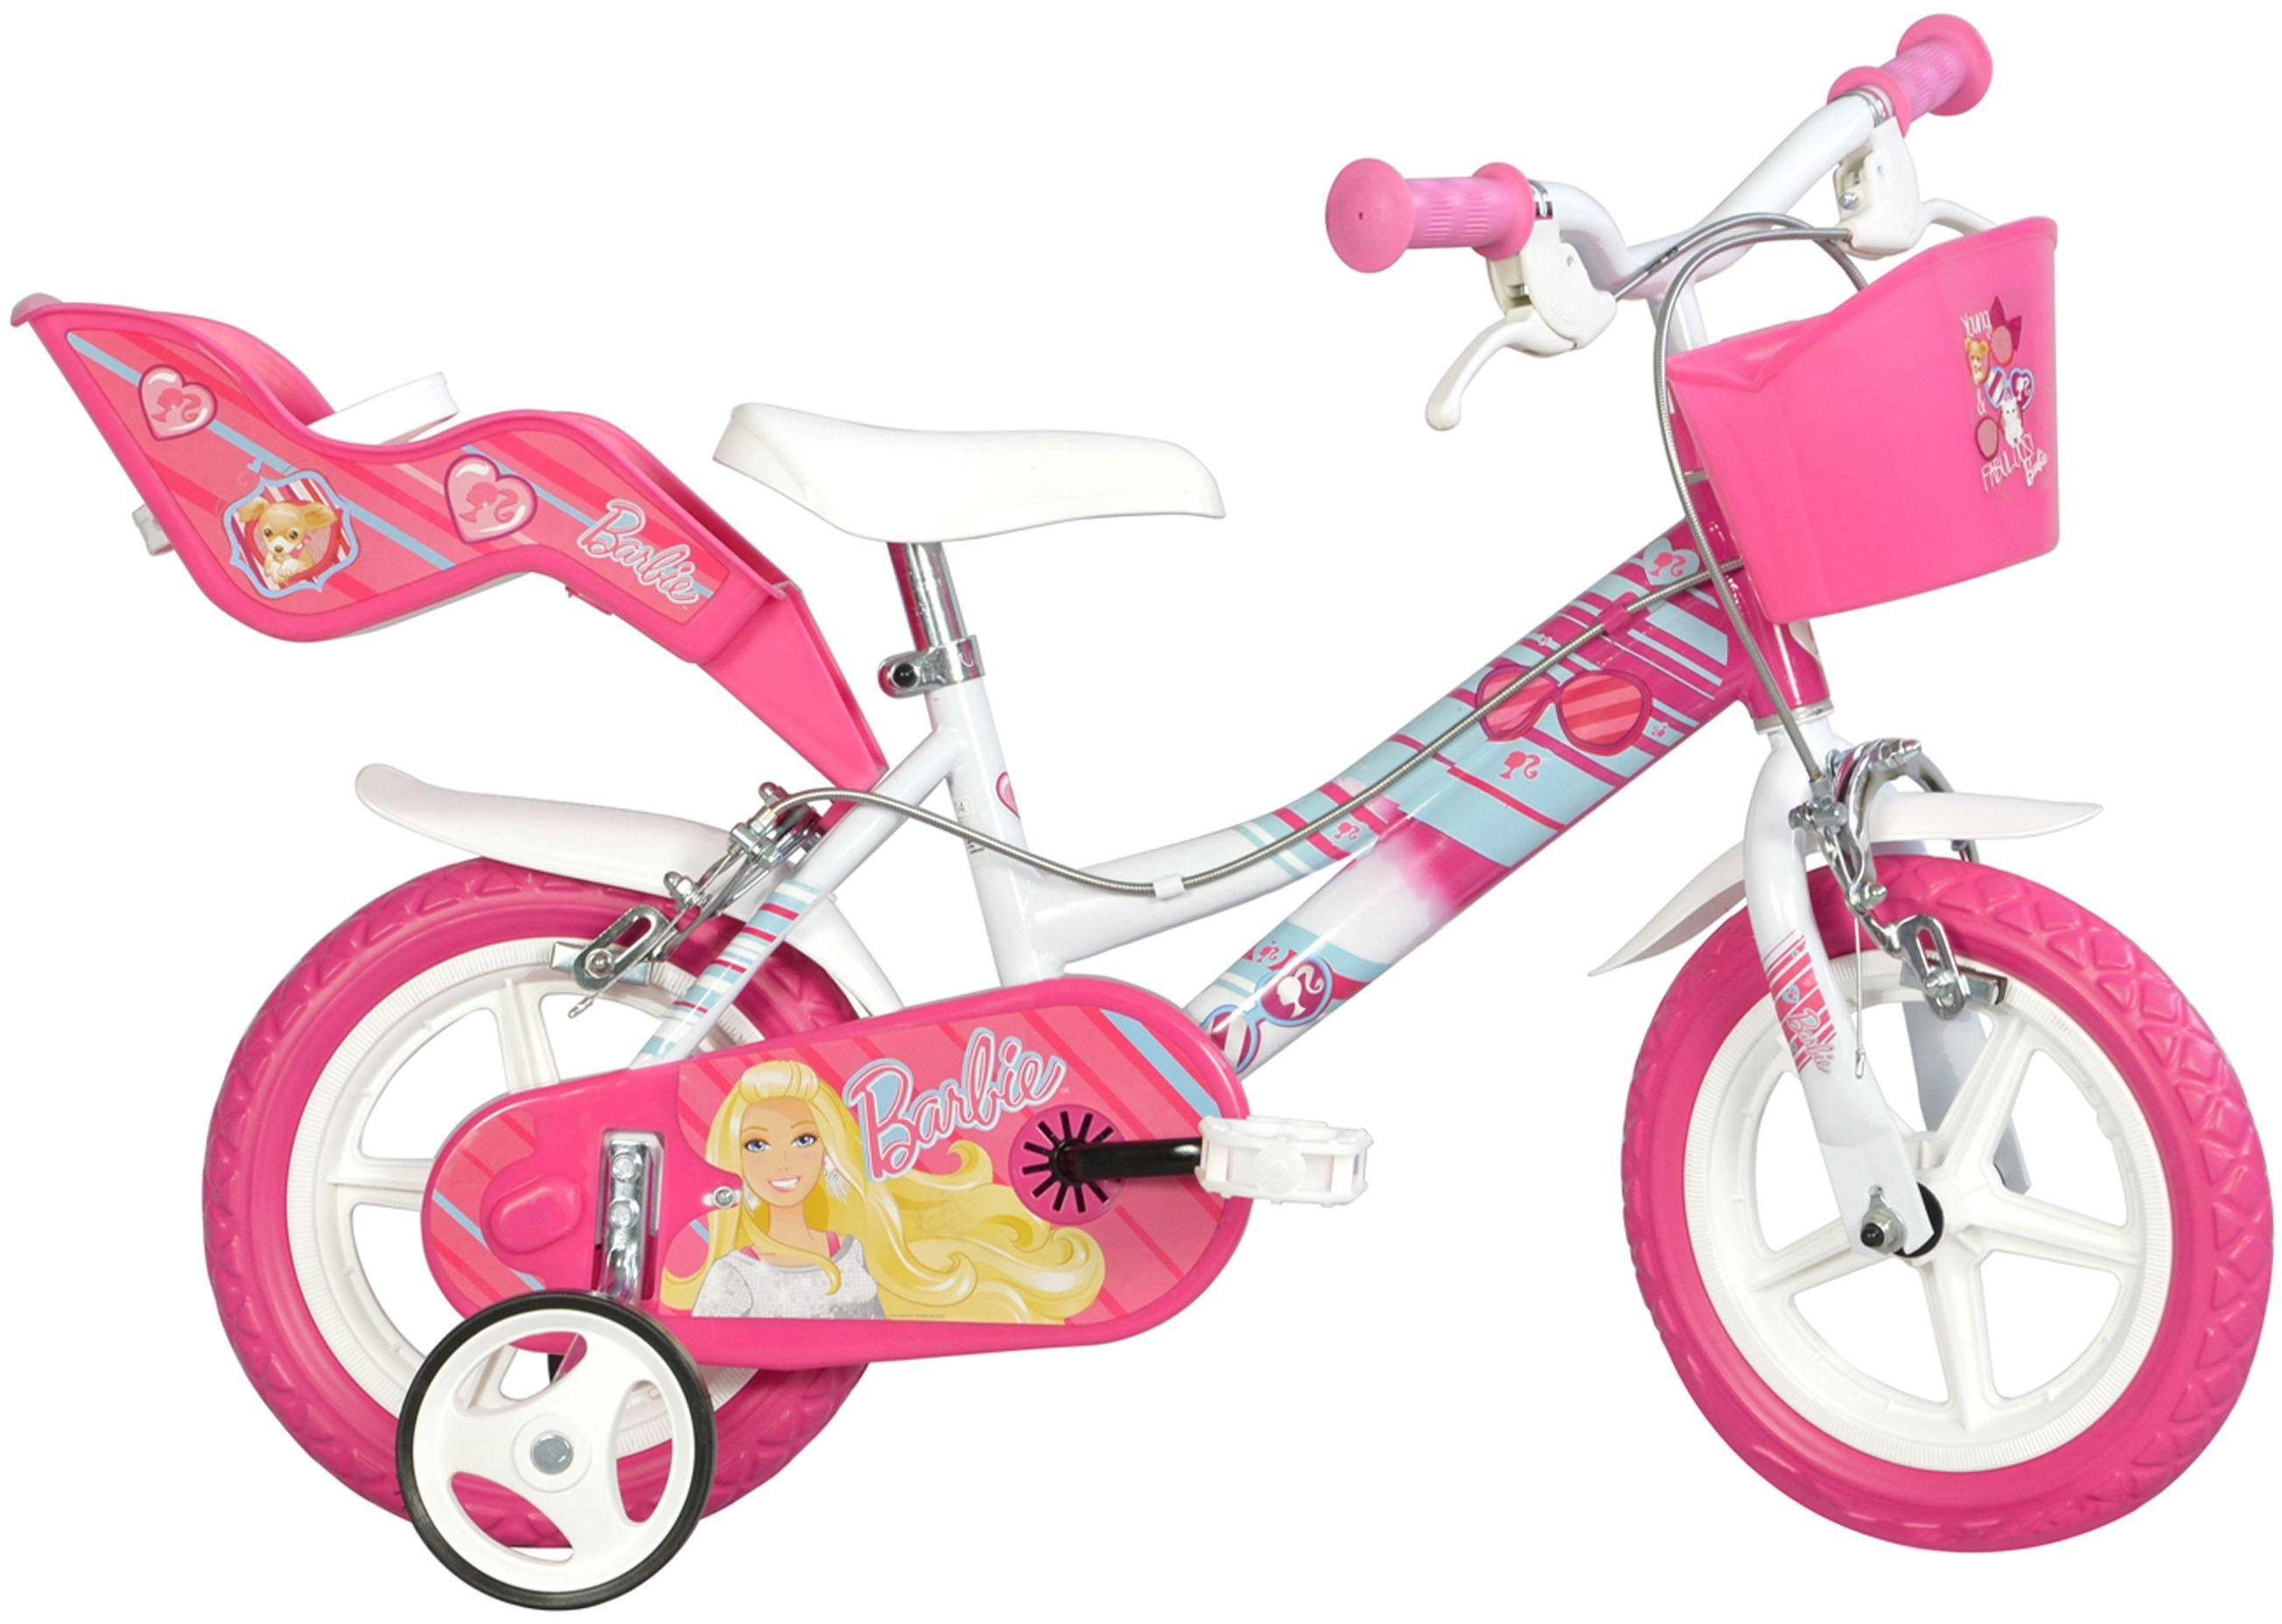 Image of Barbie Bicycle 12 inch